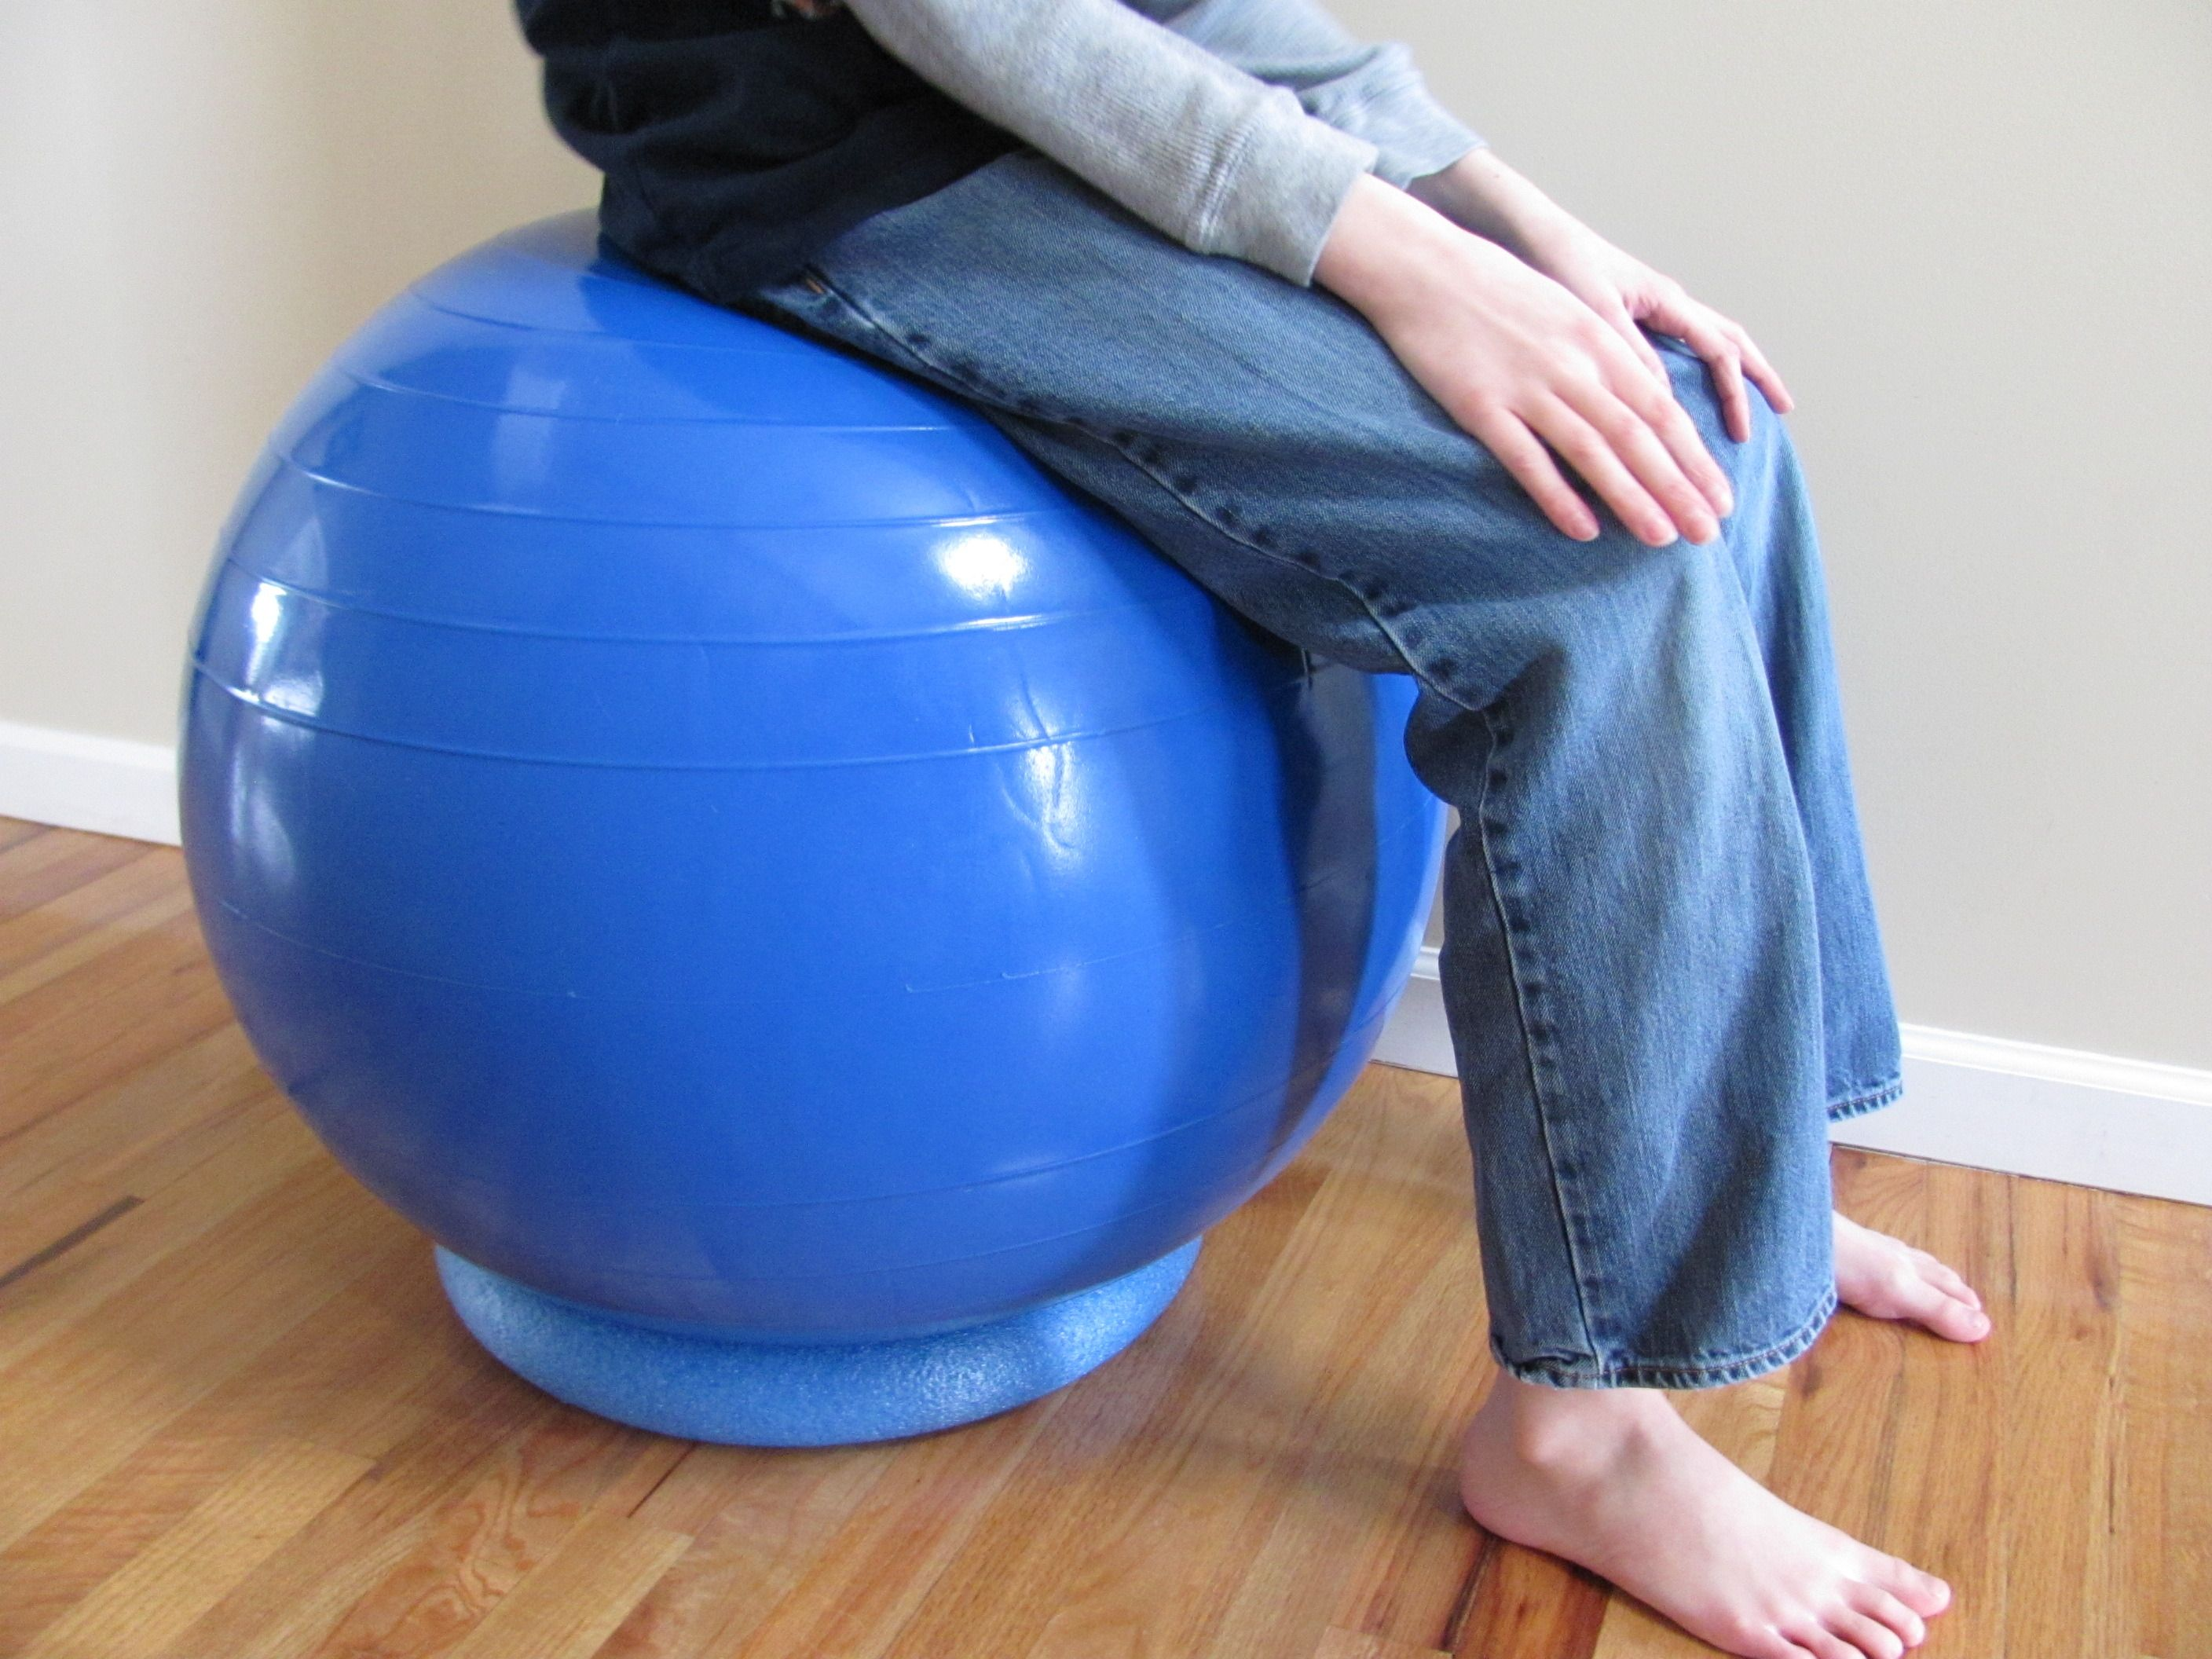 turn a ball into a chair using $1 pool noodle DIY